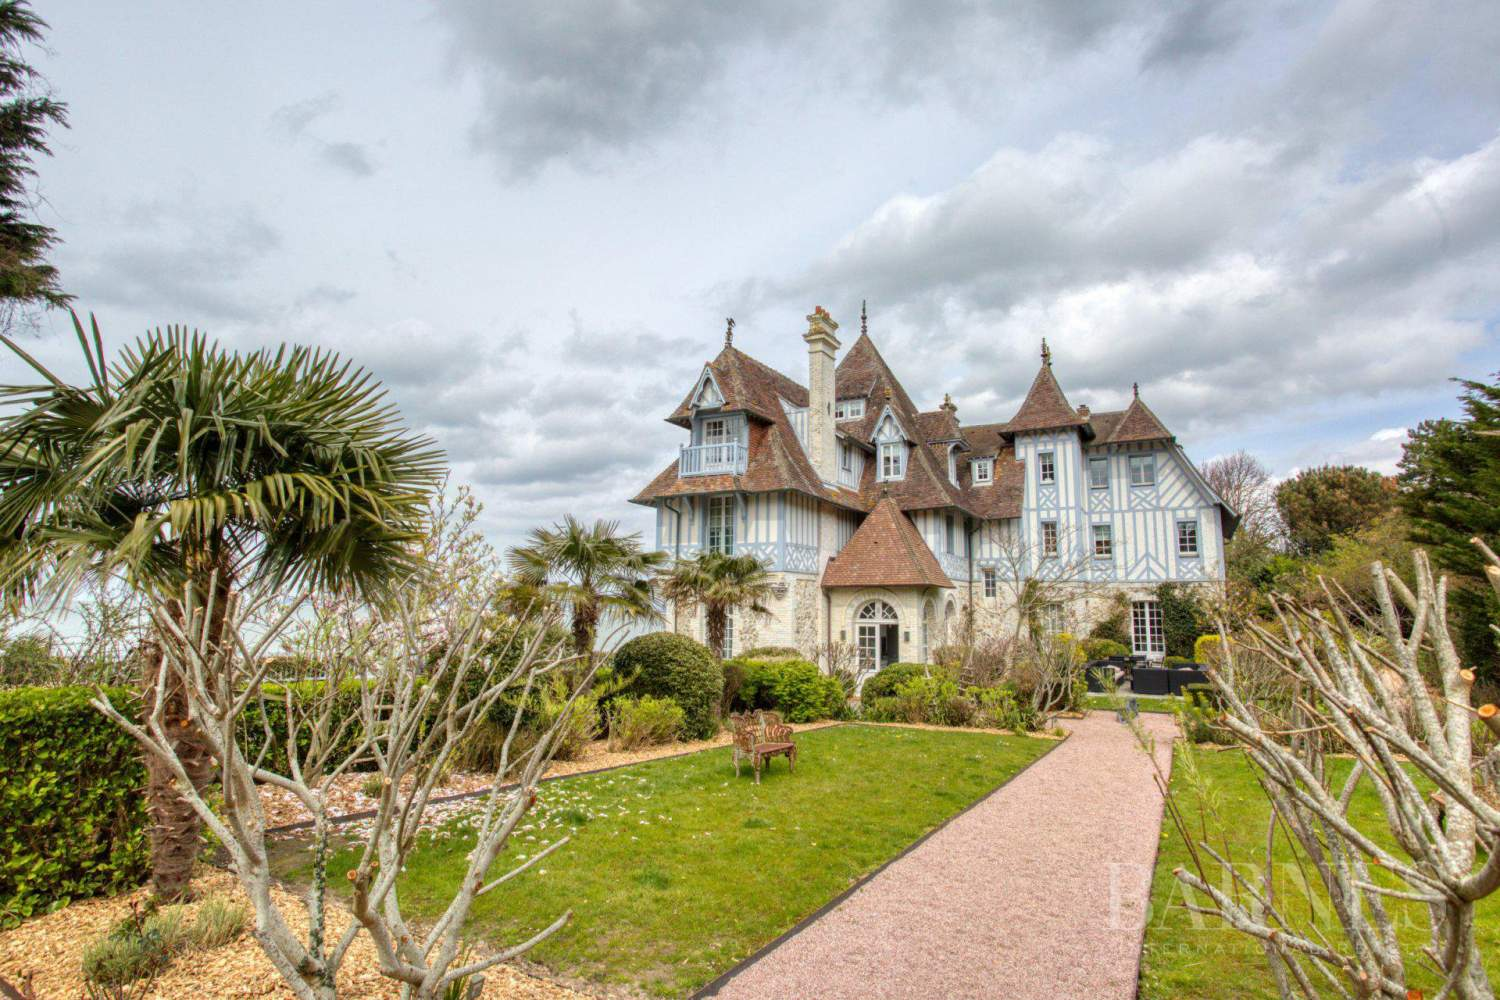 Close to Deauville - Exceptional property - 7 bedrooms - Swimming pool - direct beach access picture 3